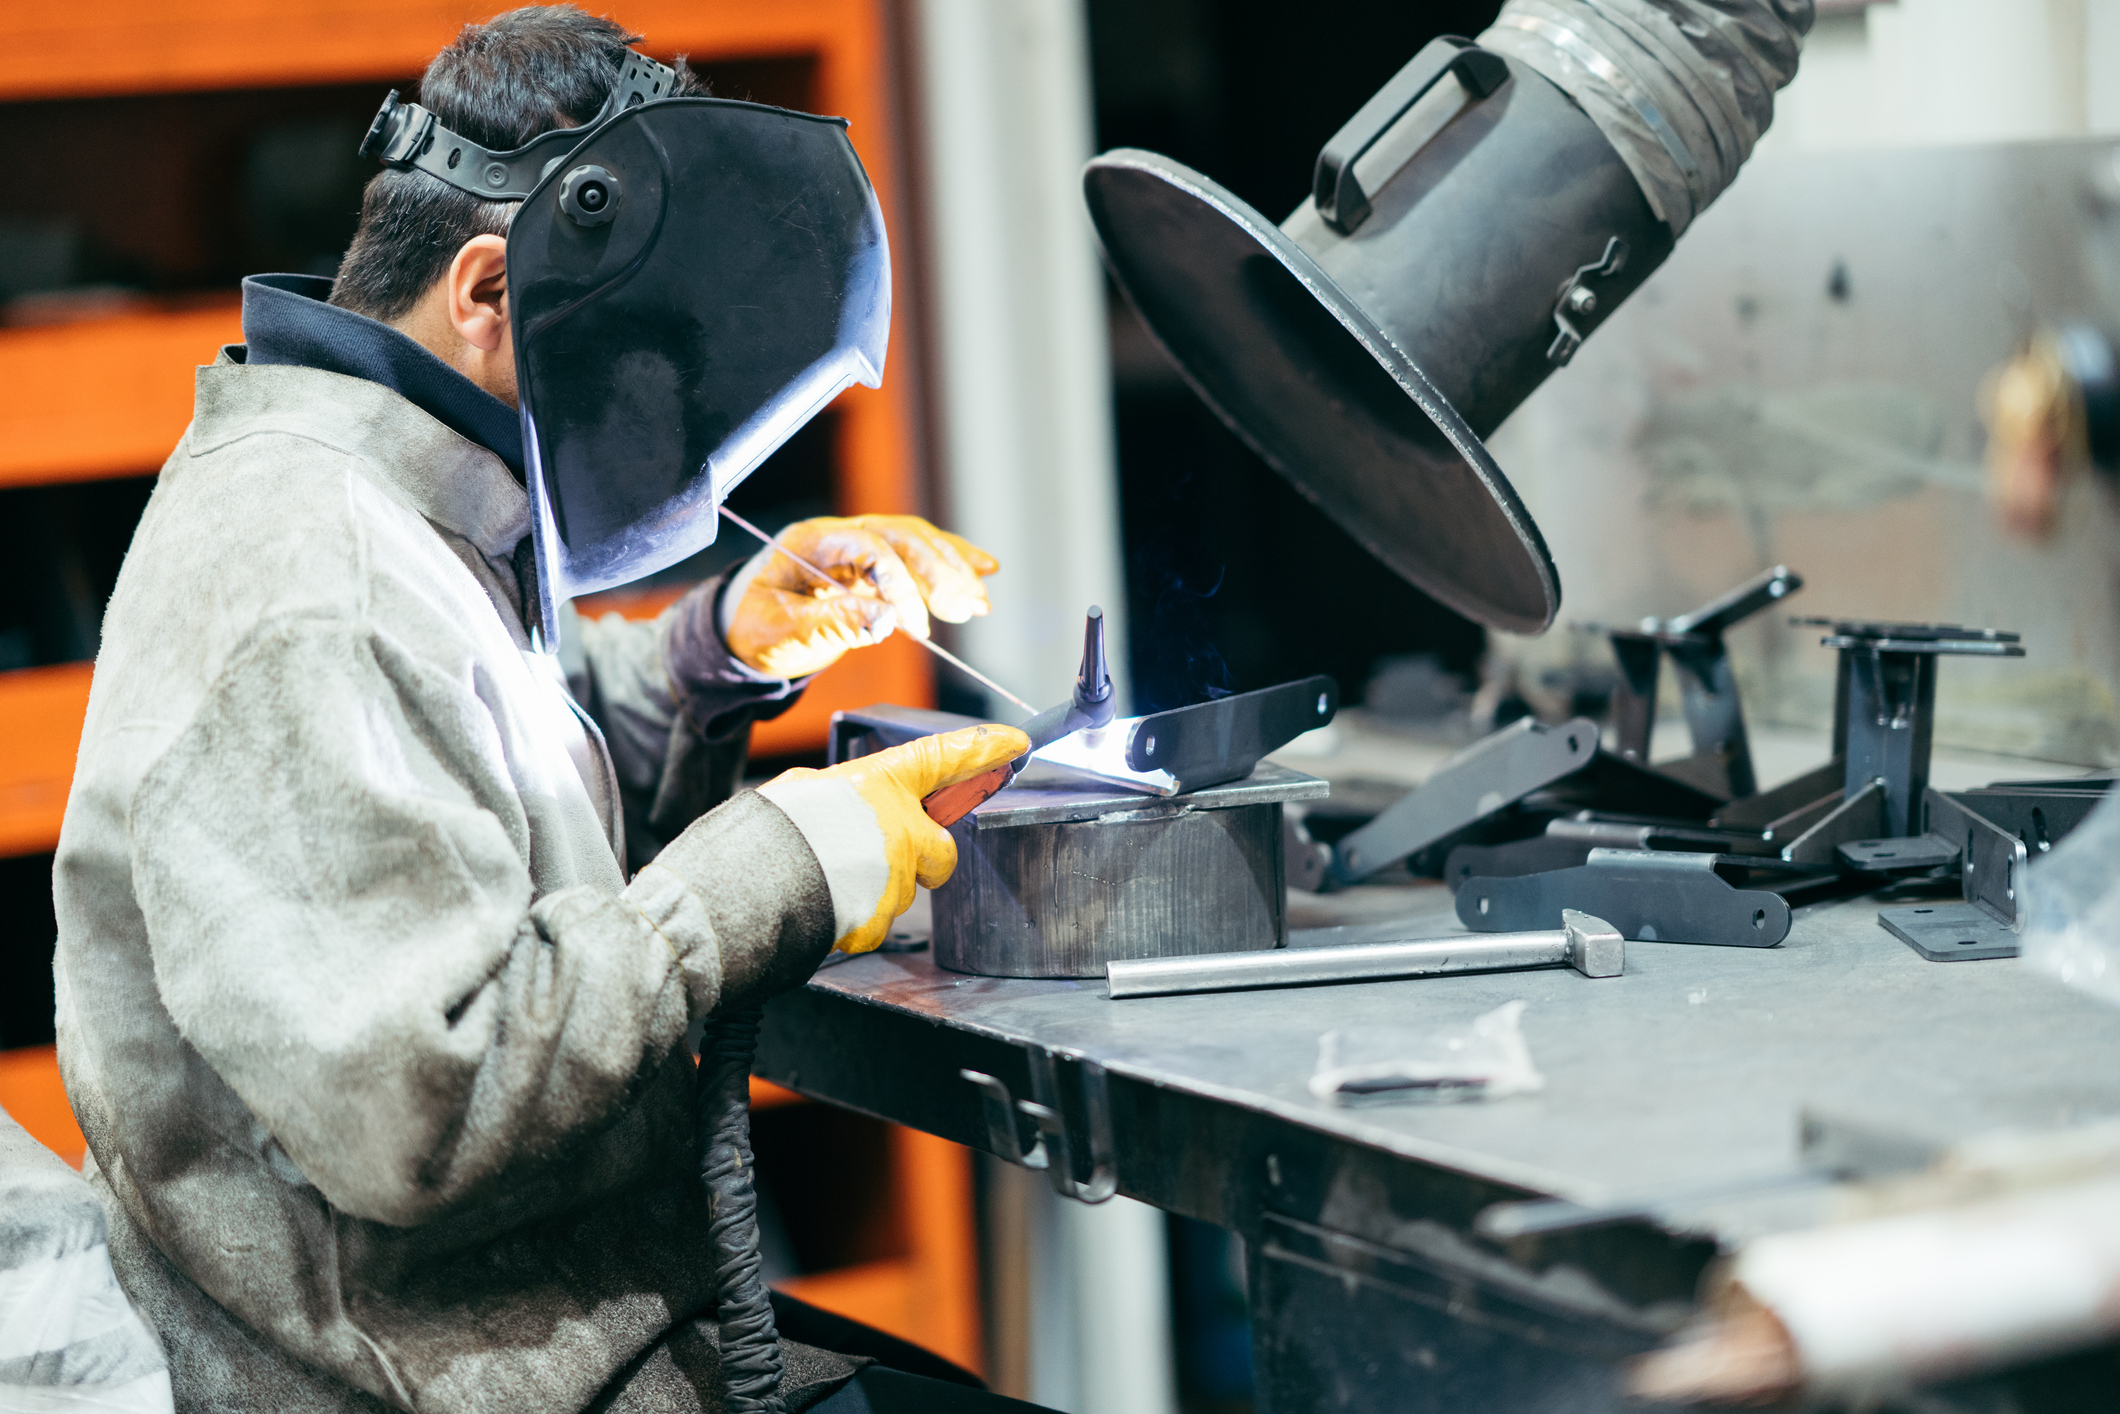 New classification – welding fumes and UV radiation